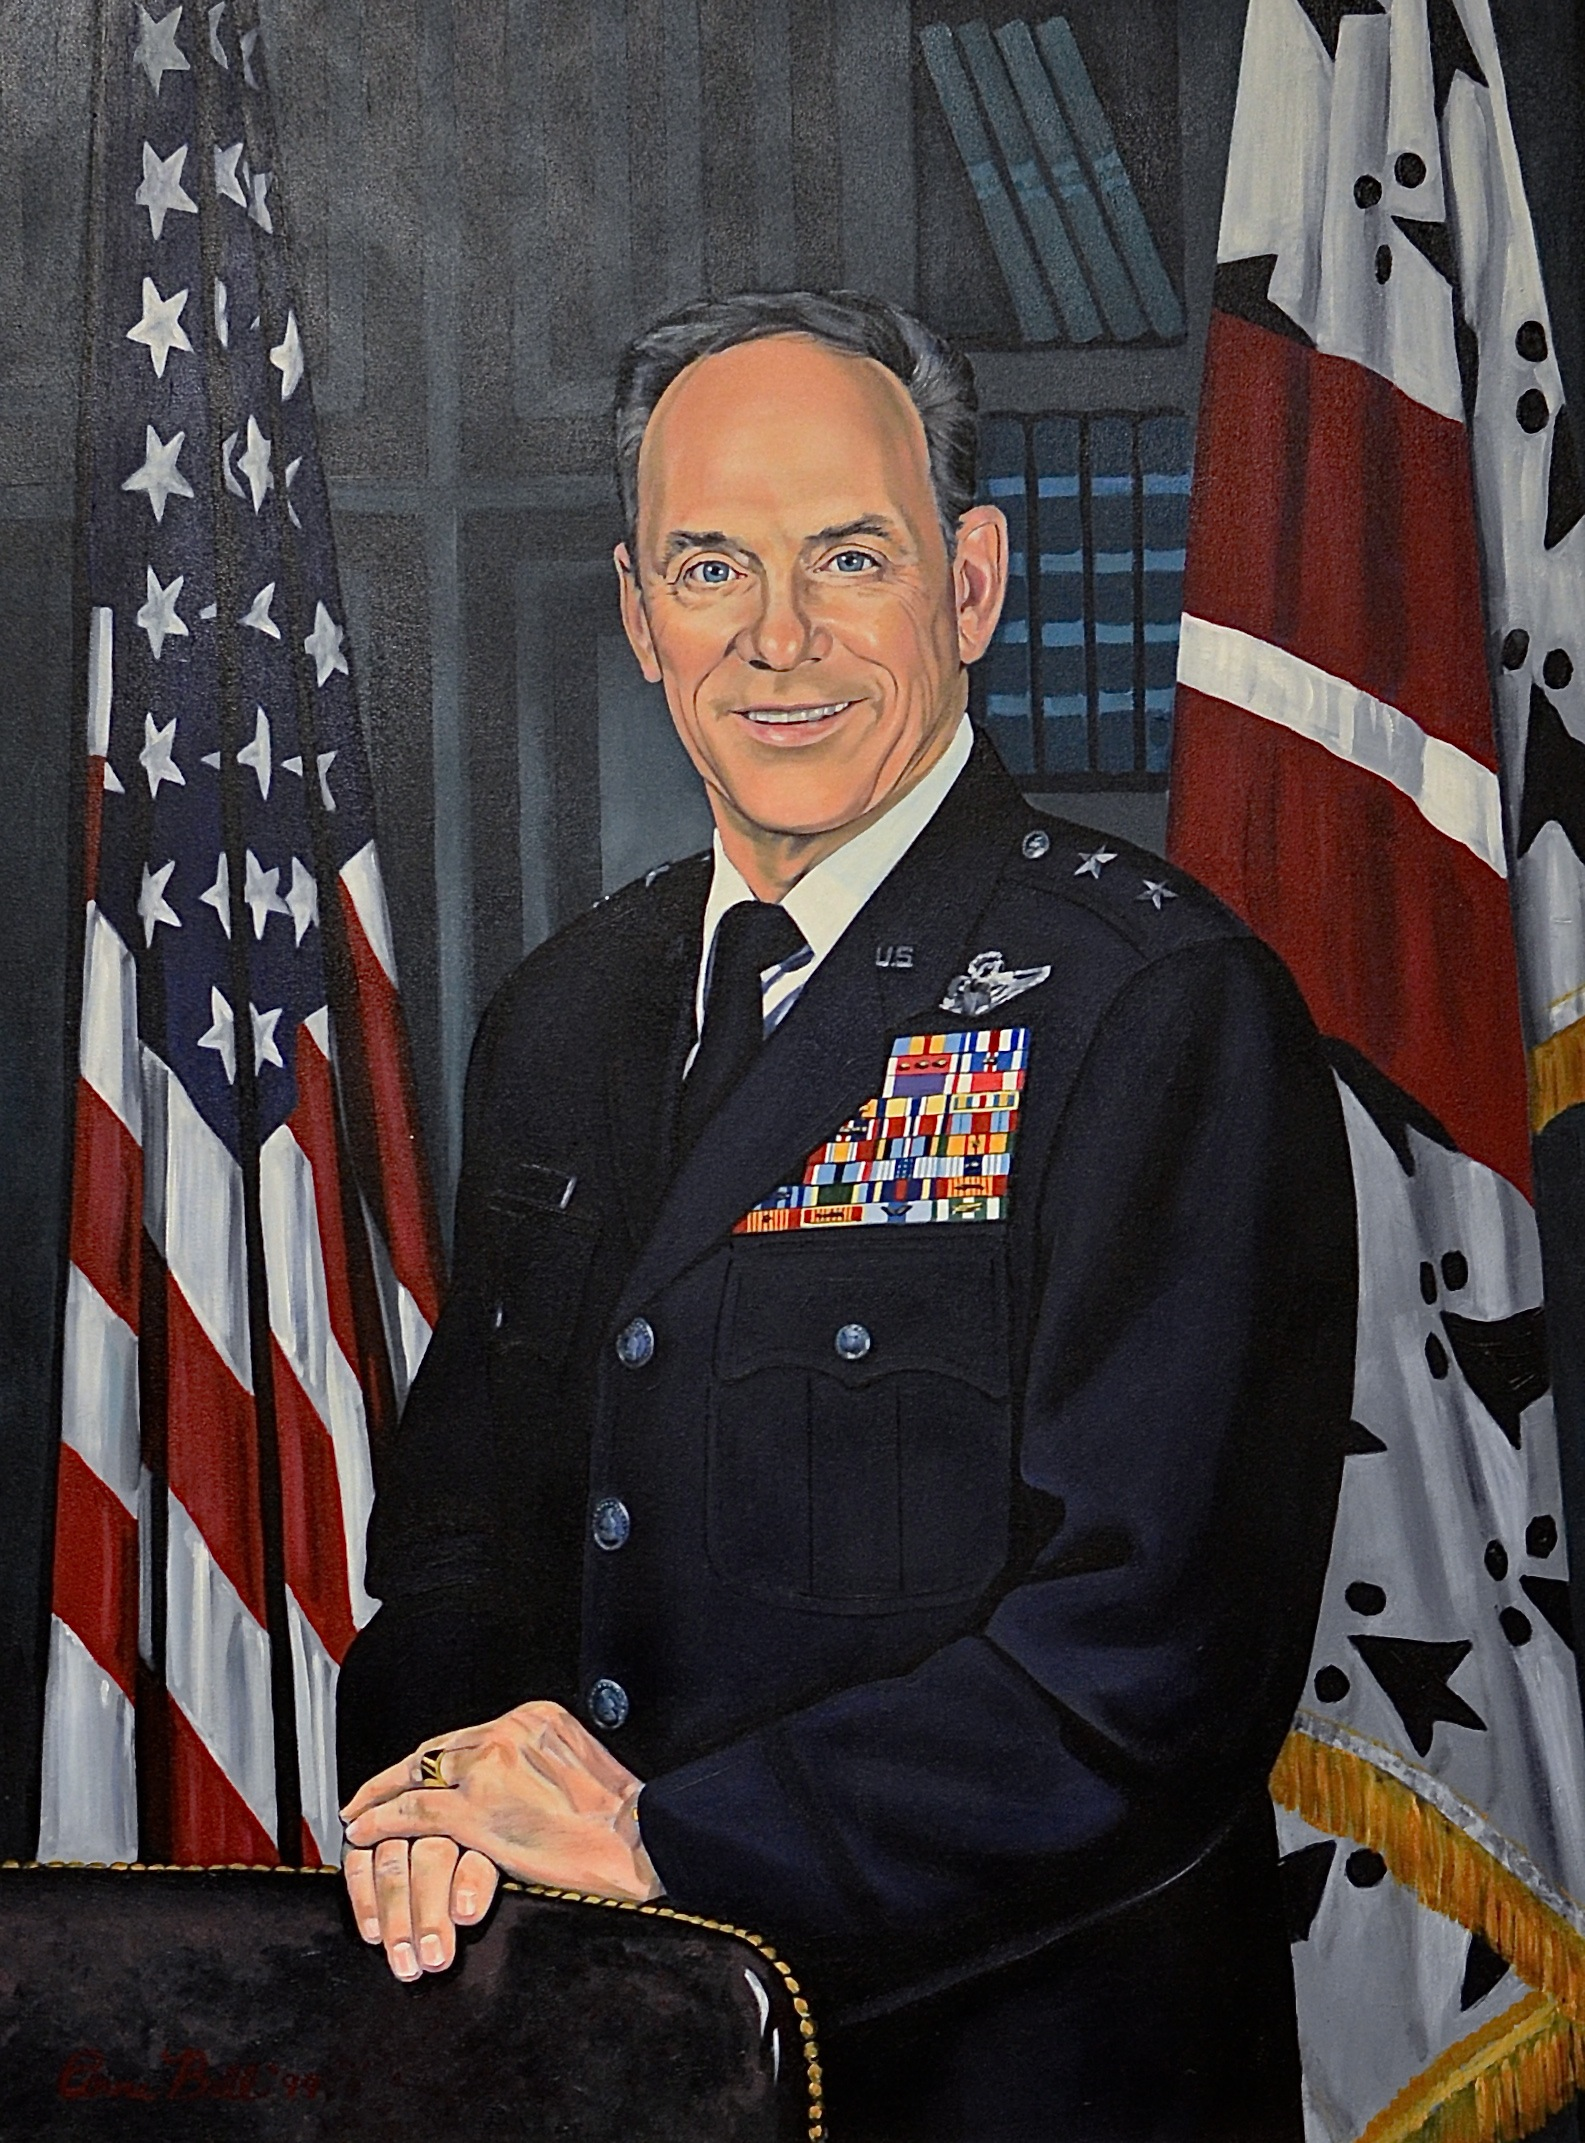 An oil painting of former Commandant Maj. Gen. Stanton Musser which hangs in Brodie Hall, one of the Corps of Cadets dorms.